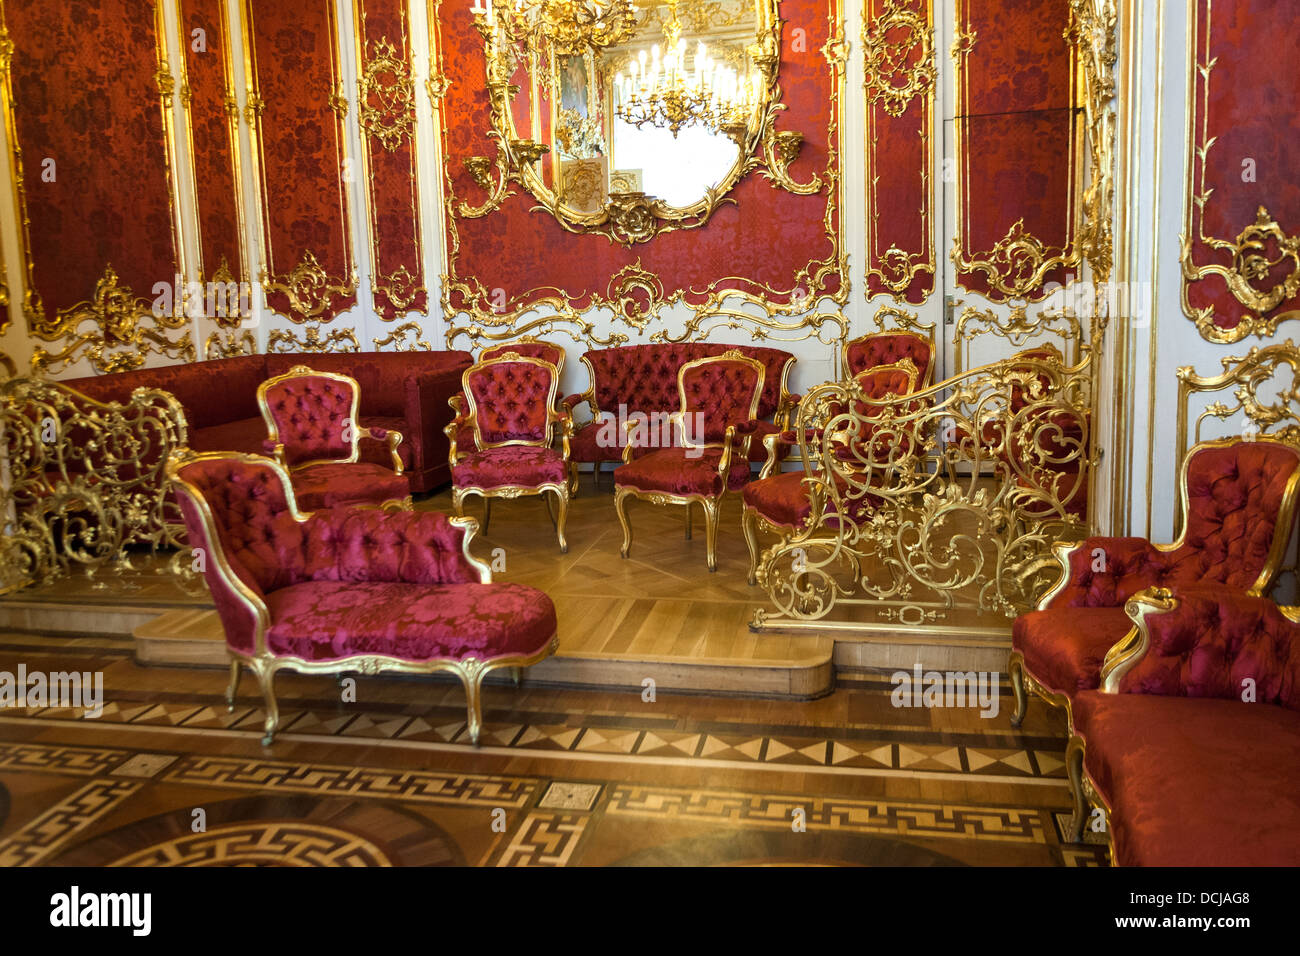 Imperial furniture - Interior Artworks Decor Furniture And Architecture The Hermitage St Petersburg Russia Stock Image